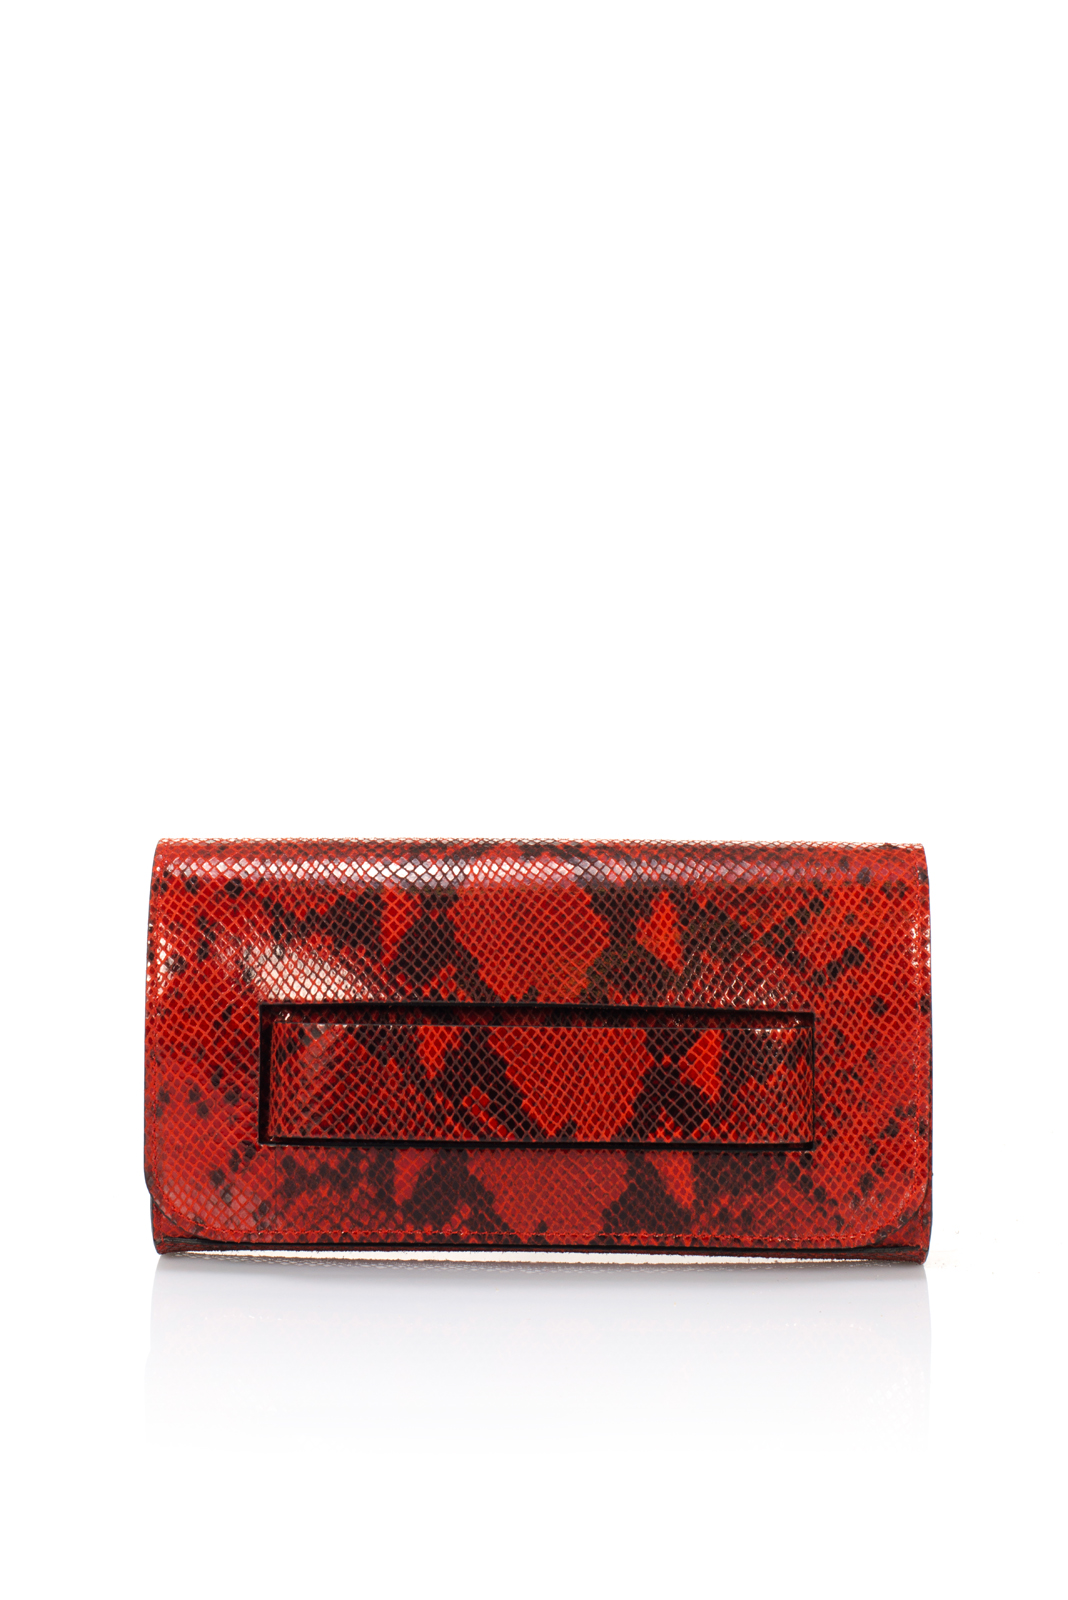 ALTHEA・PRINTED SUEDE・RED